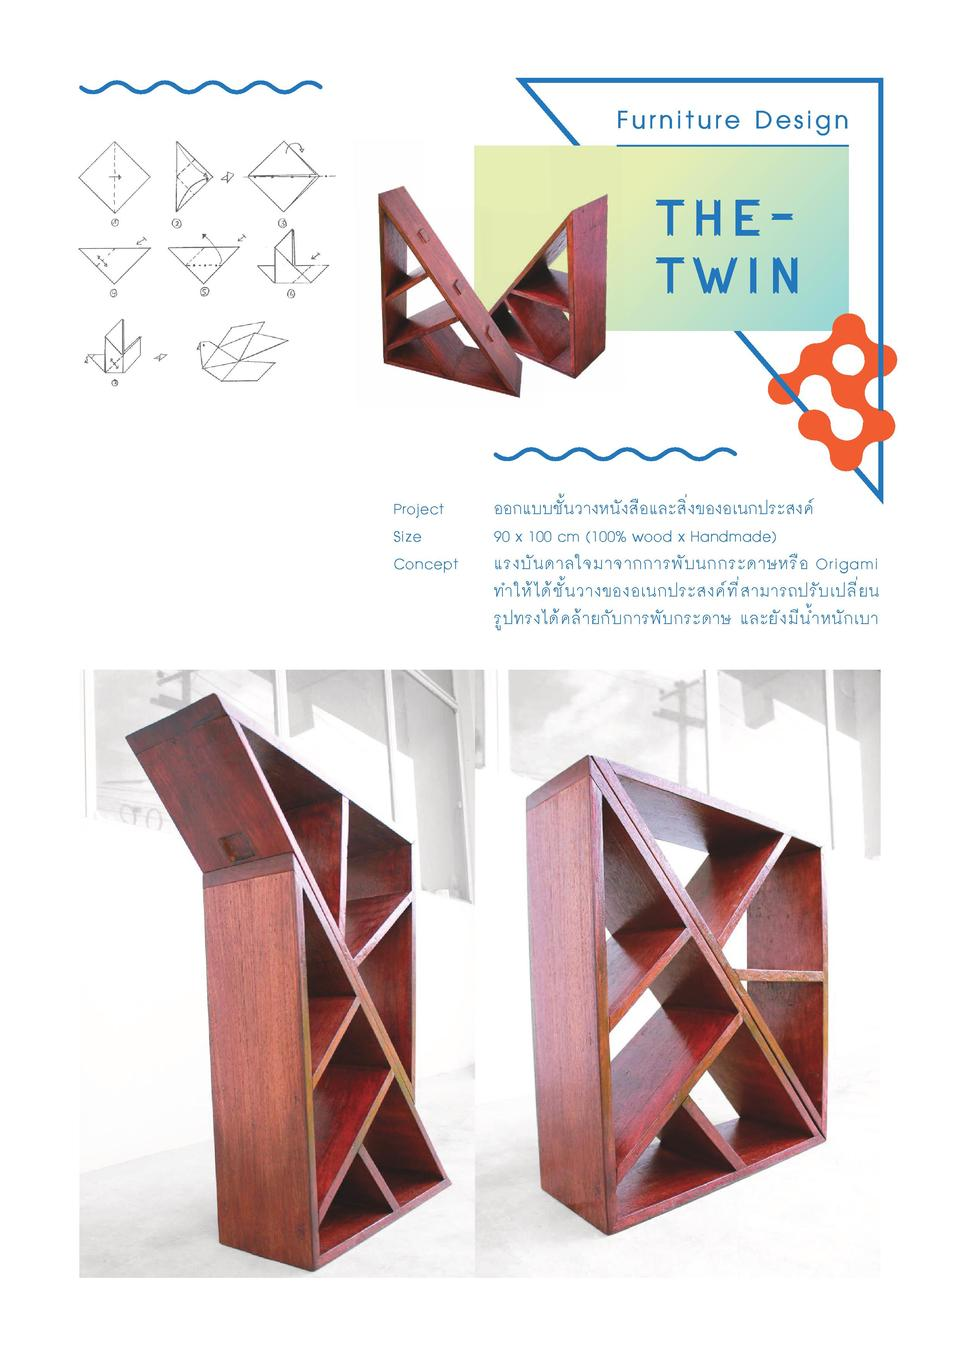 Furniture Design  thetwin  Project Size Concept                                                                           ...